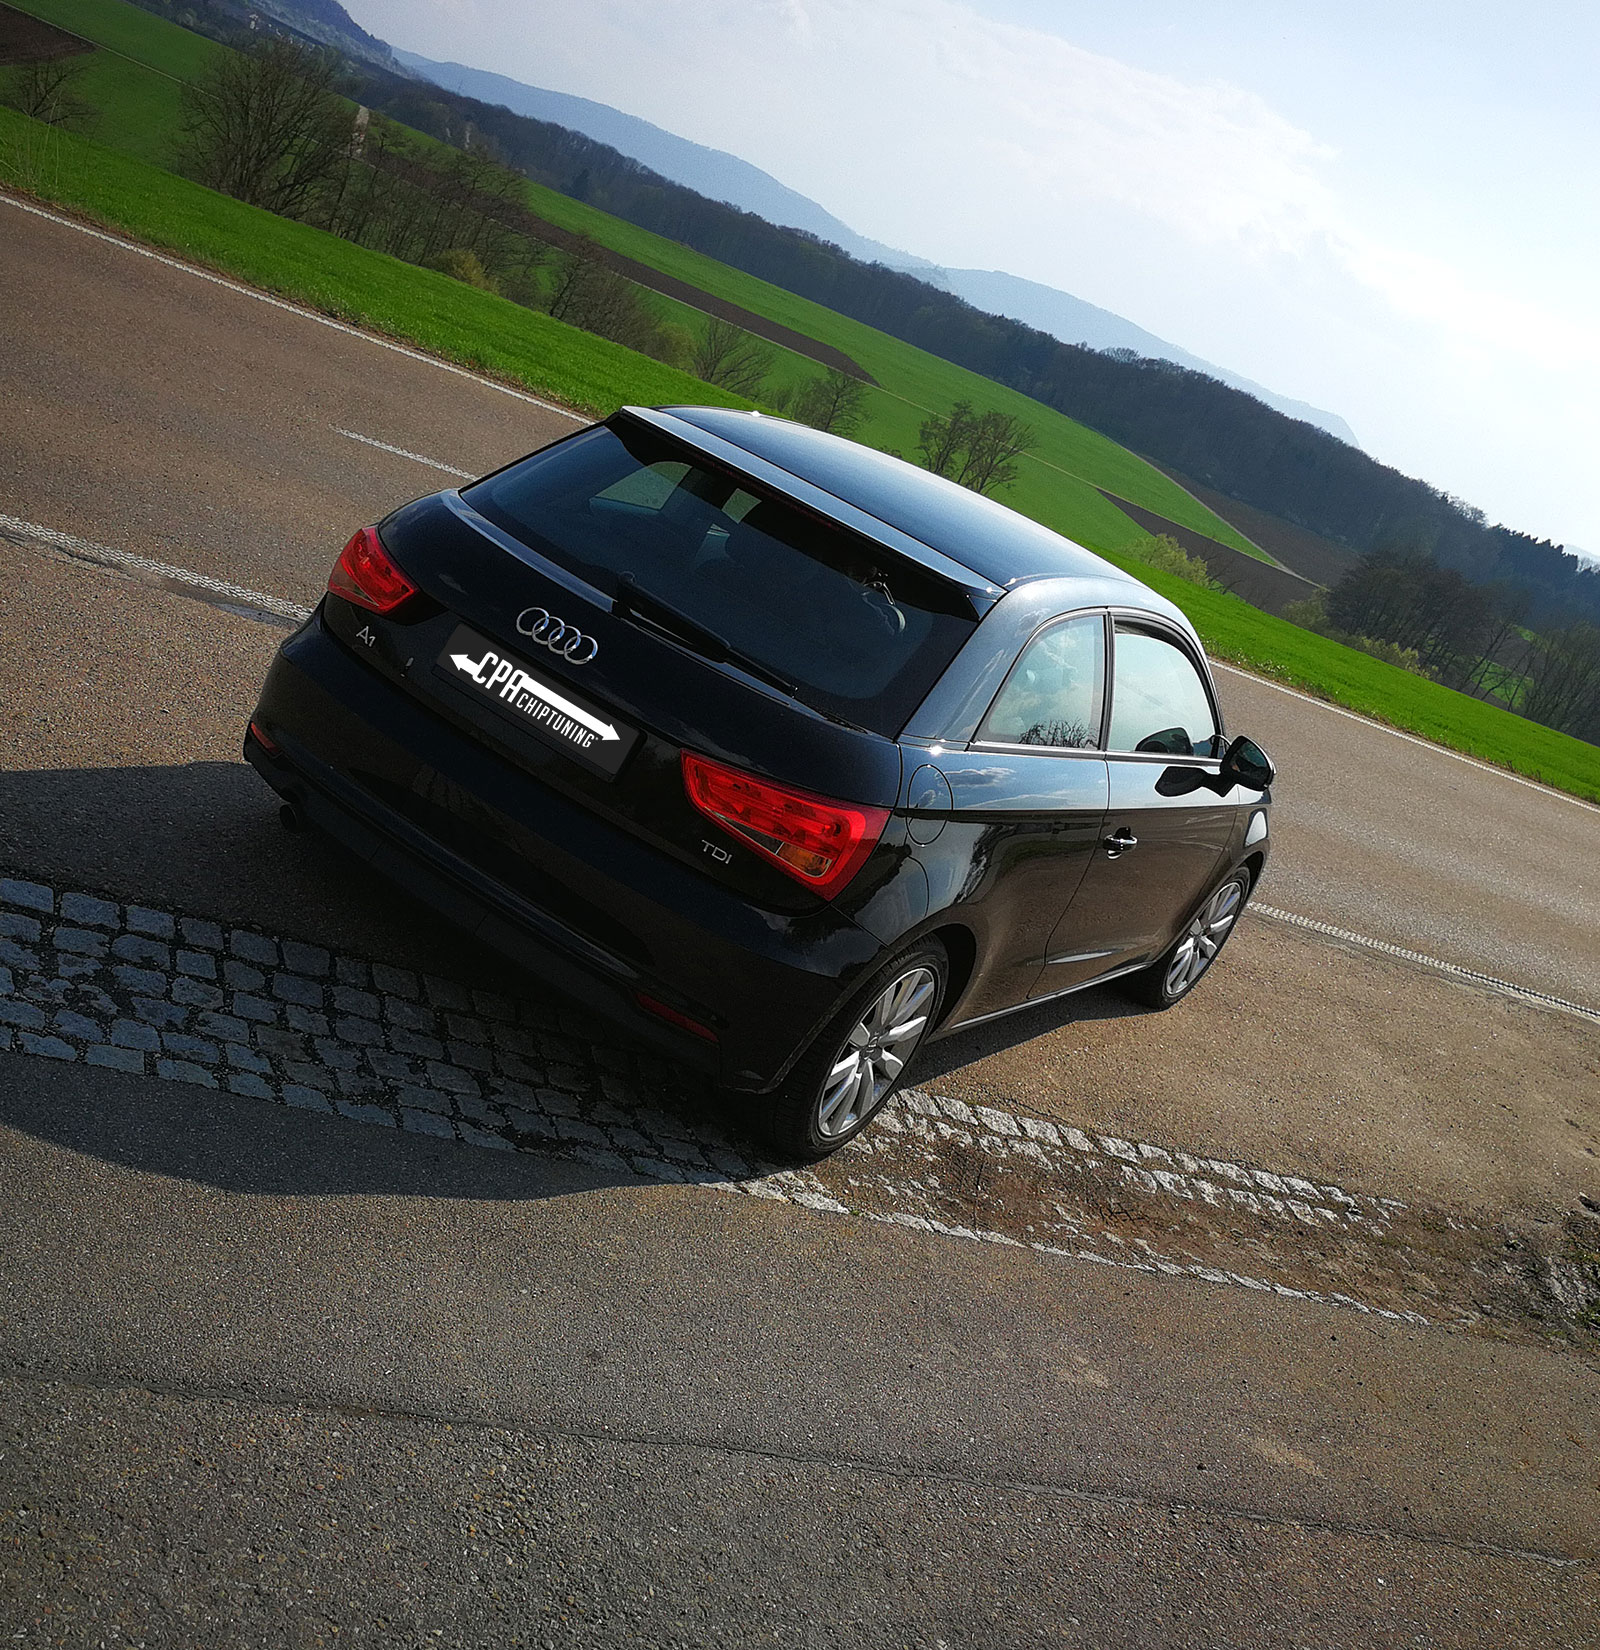 Langzeittest: Audi A1 1.4 TDI und CPA Connective System